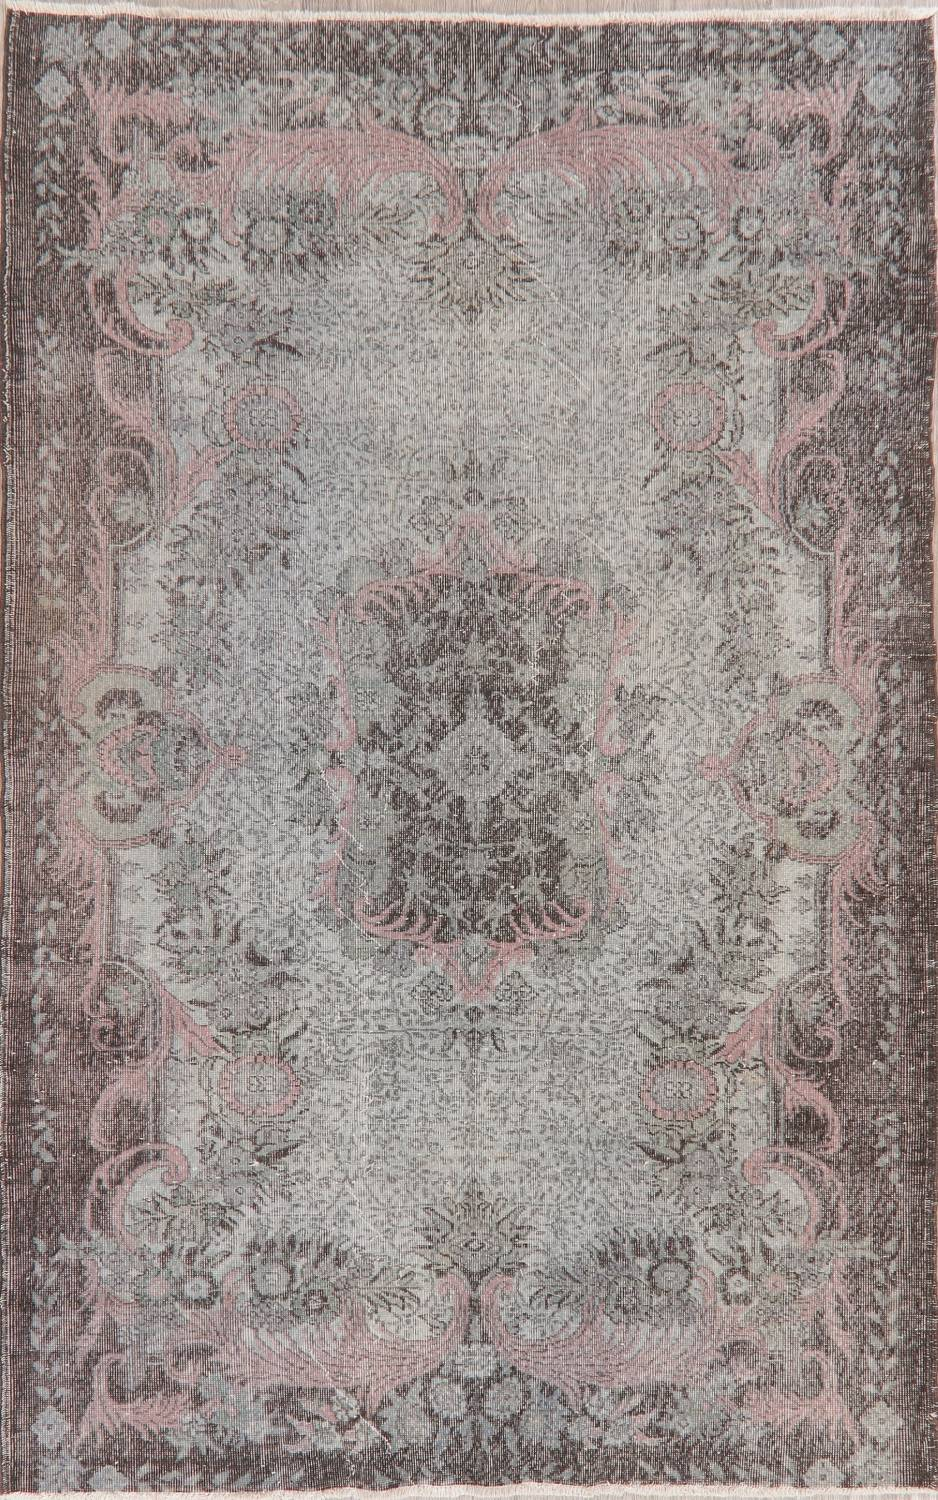 Antique Muted Distressed Aubusson Oriental Area Rug 6x10 image 1